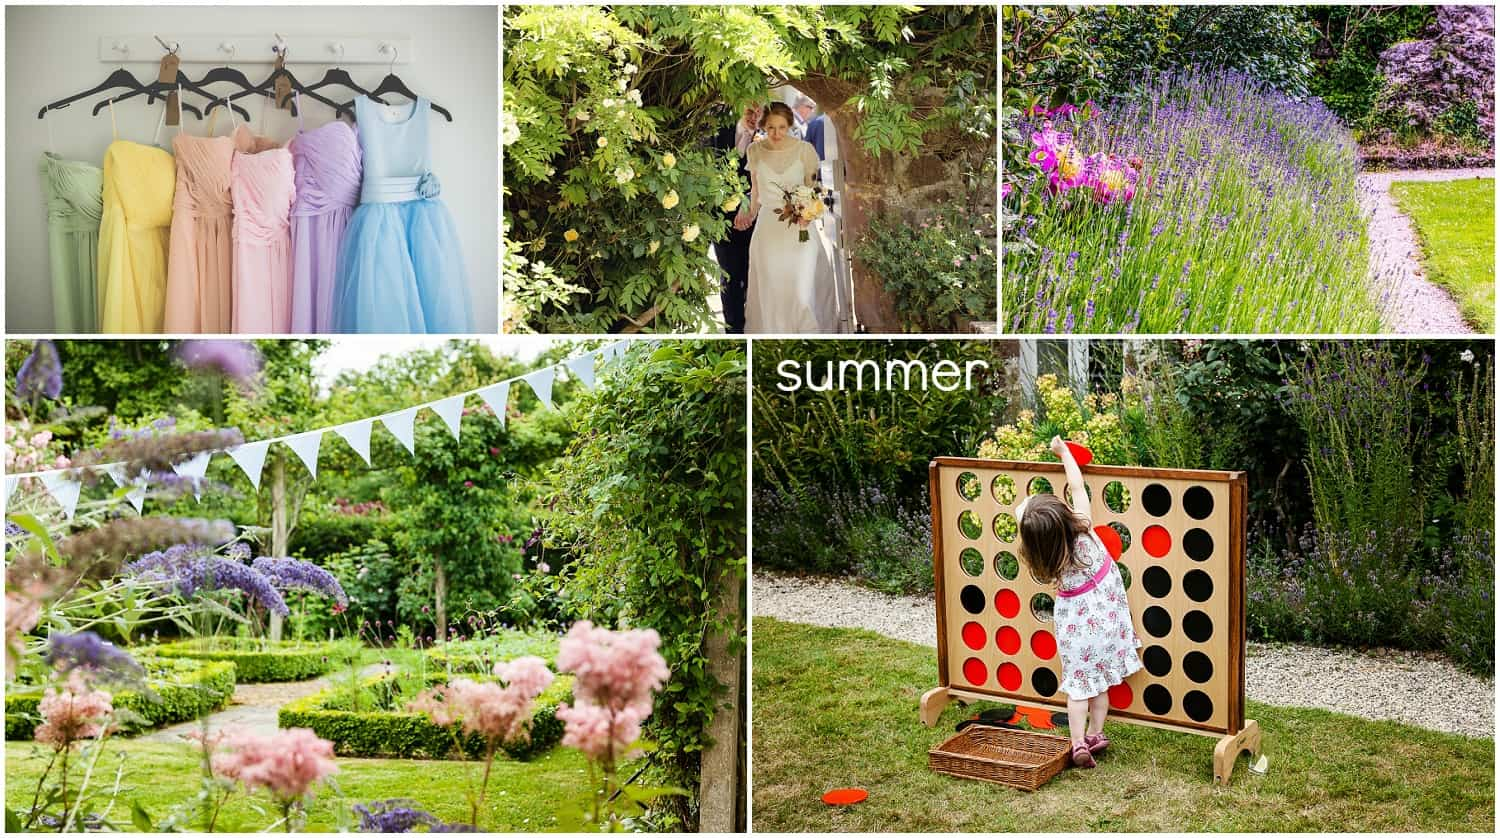 summer vs autumn weddings last few dates available for 2017